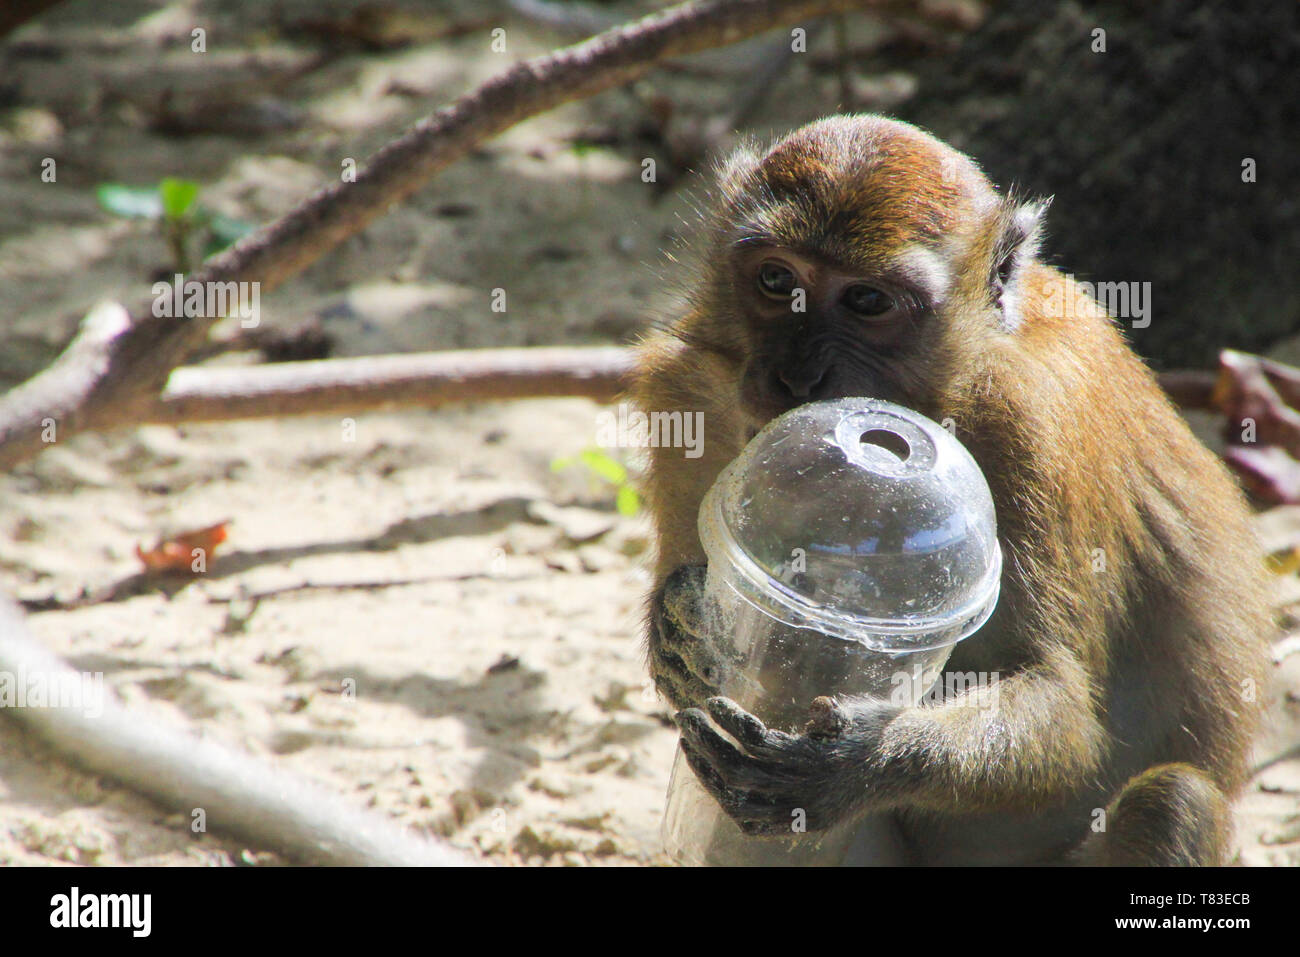 Close up of isolated macaque monkey holding plastic cup on polluted beach, Ko Phi Phi, Ai Ling beach, Thailand - Stock Image